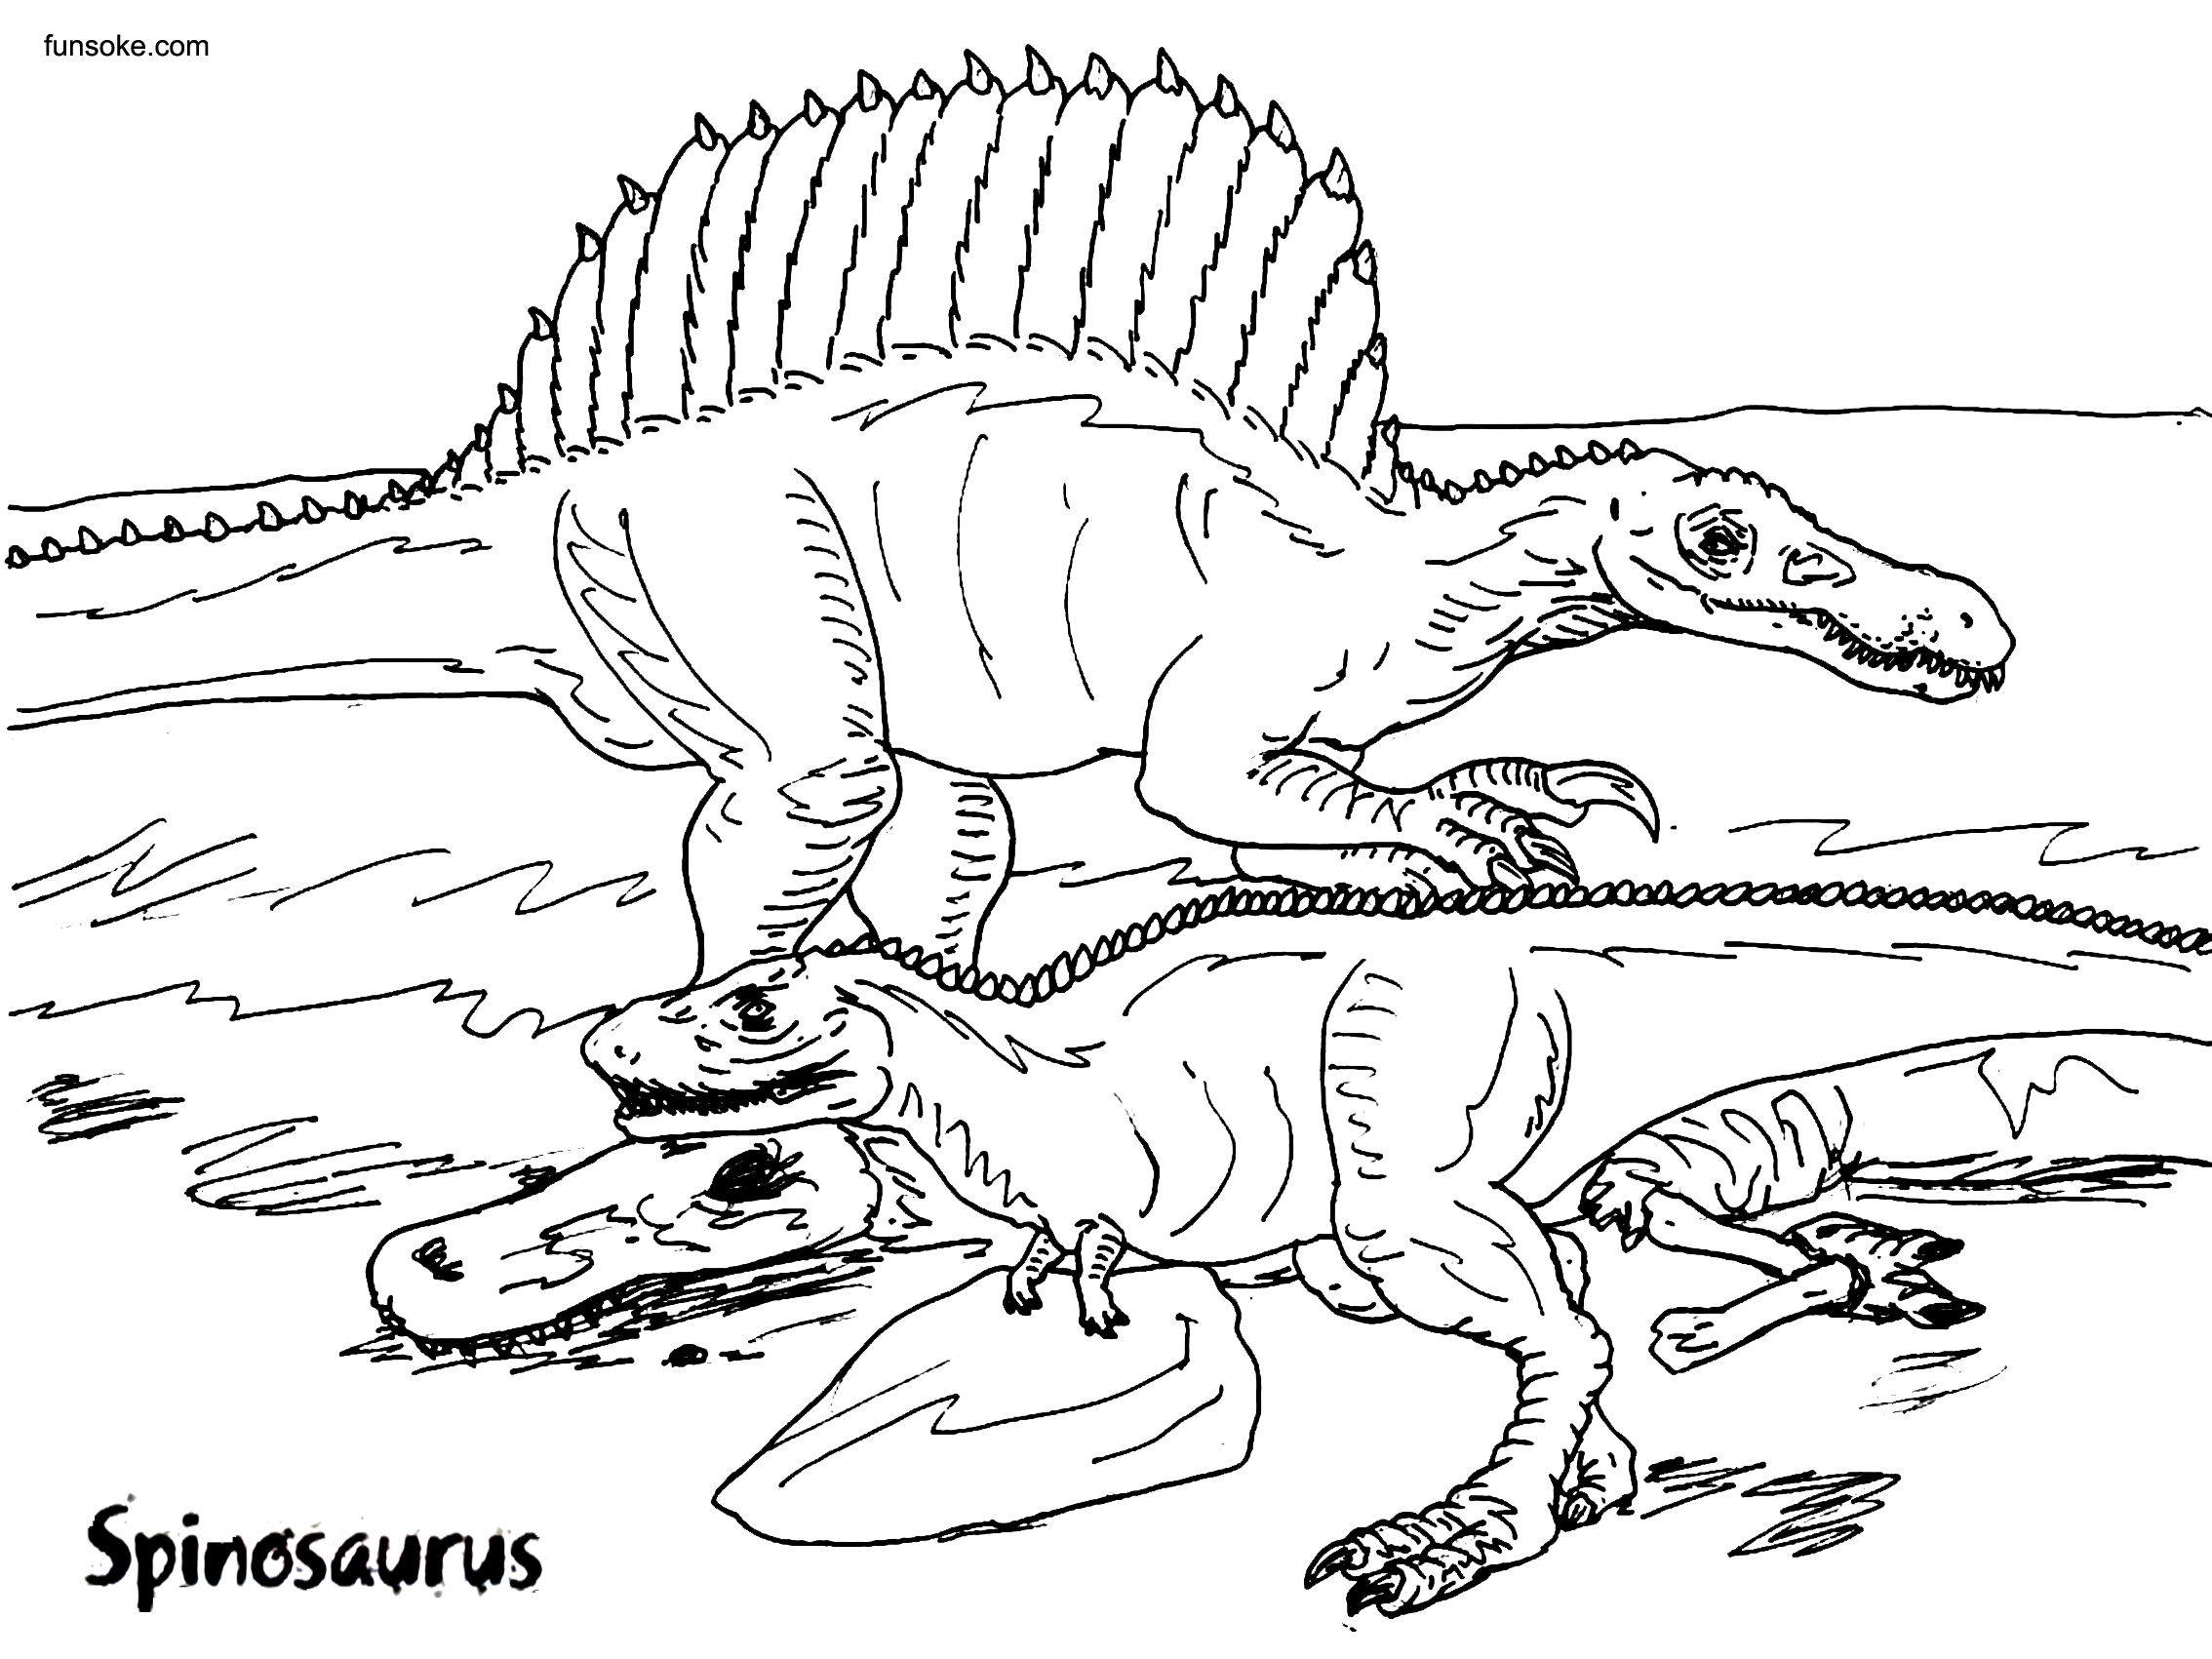 free dinosaur pictures free printable spinosaurus coloring pages funsoke free dinosaur pictures